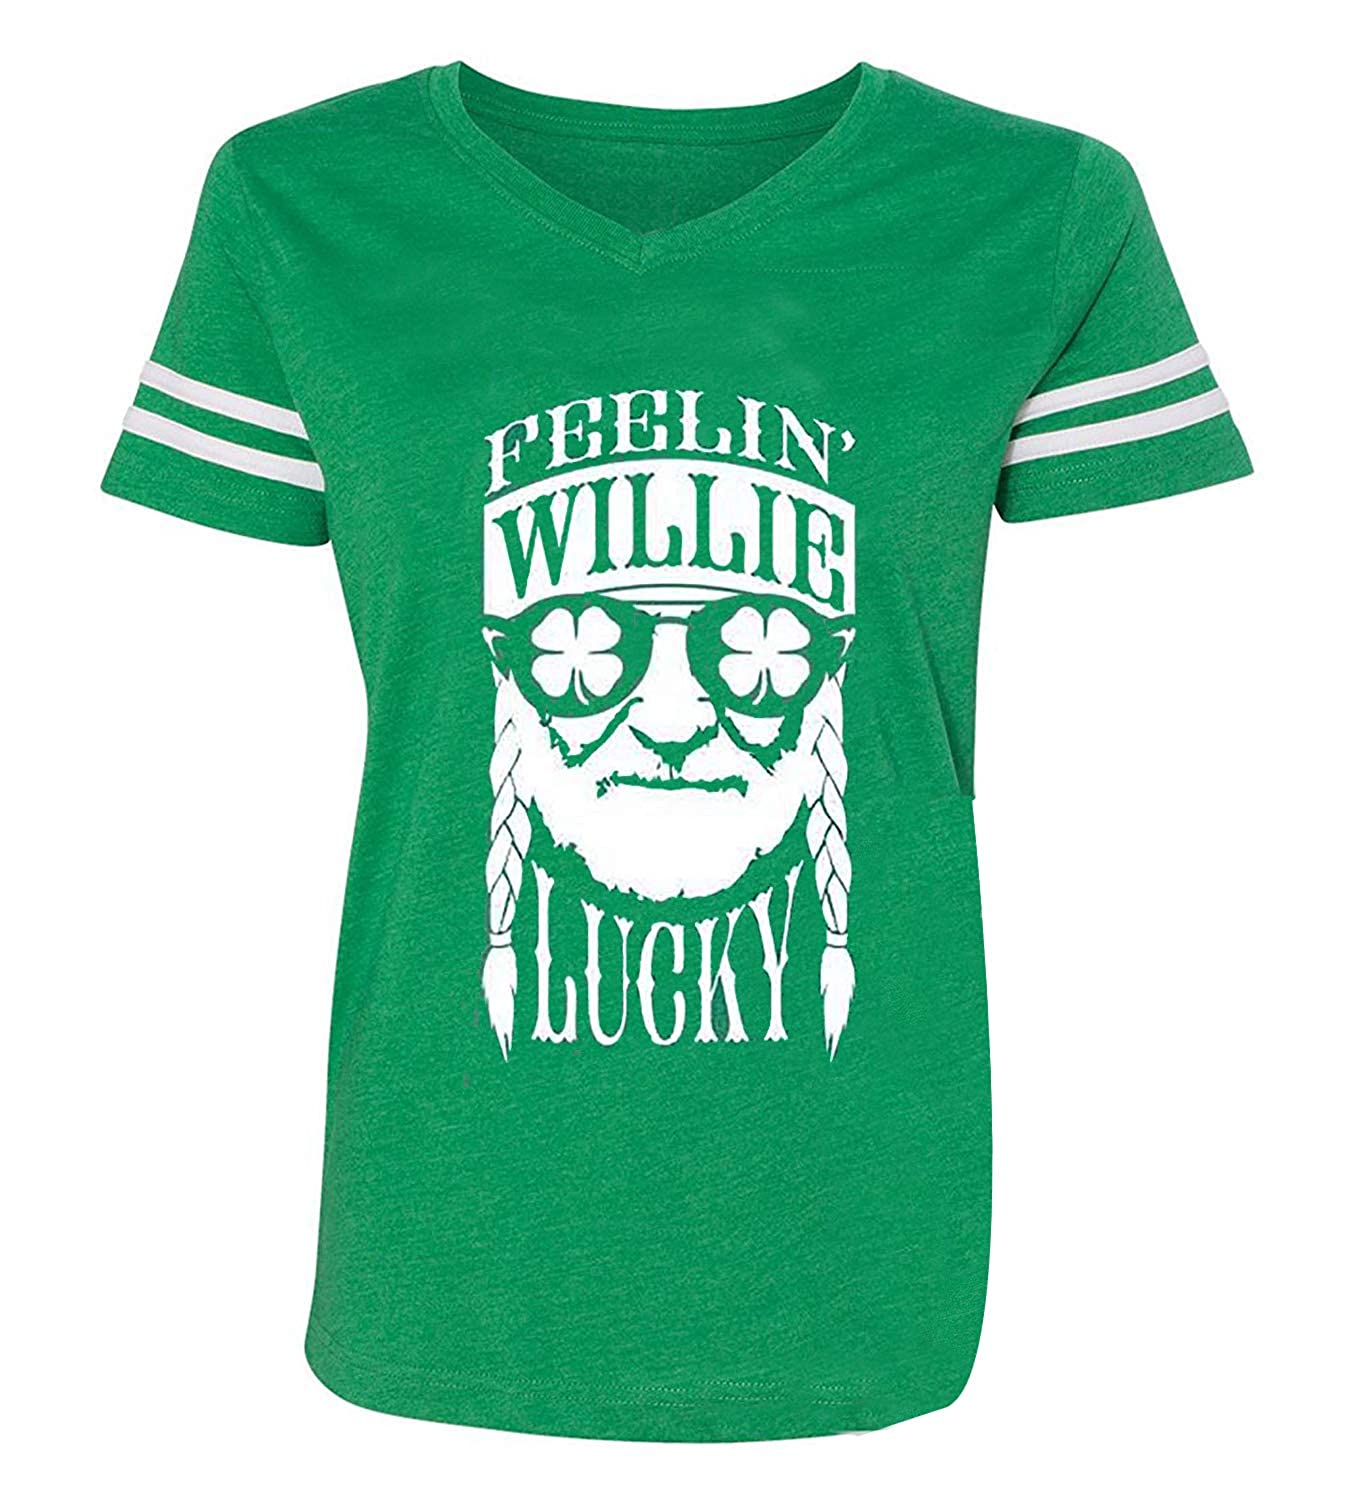 cfb2b3041 HRIUYI Feelin' Willie Lucky St. Patrick's Day Shirts Women Funny Irish  Shamrock Tops Blouse at Amazon Women's Clothing store: